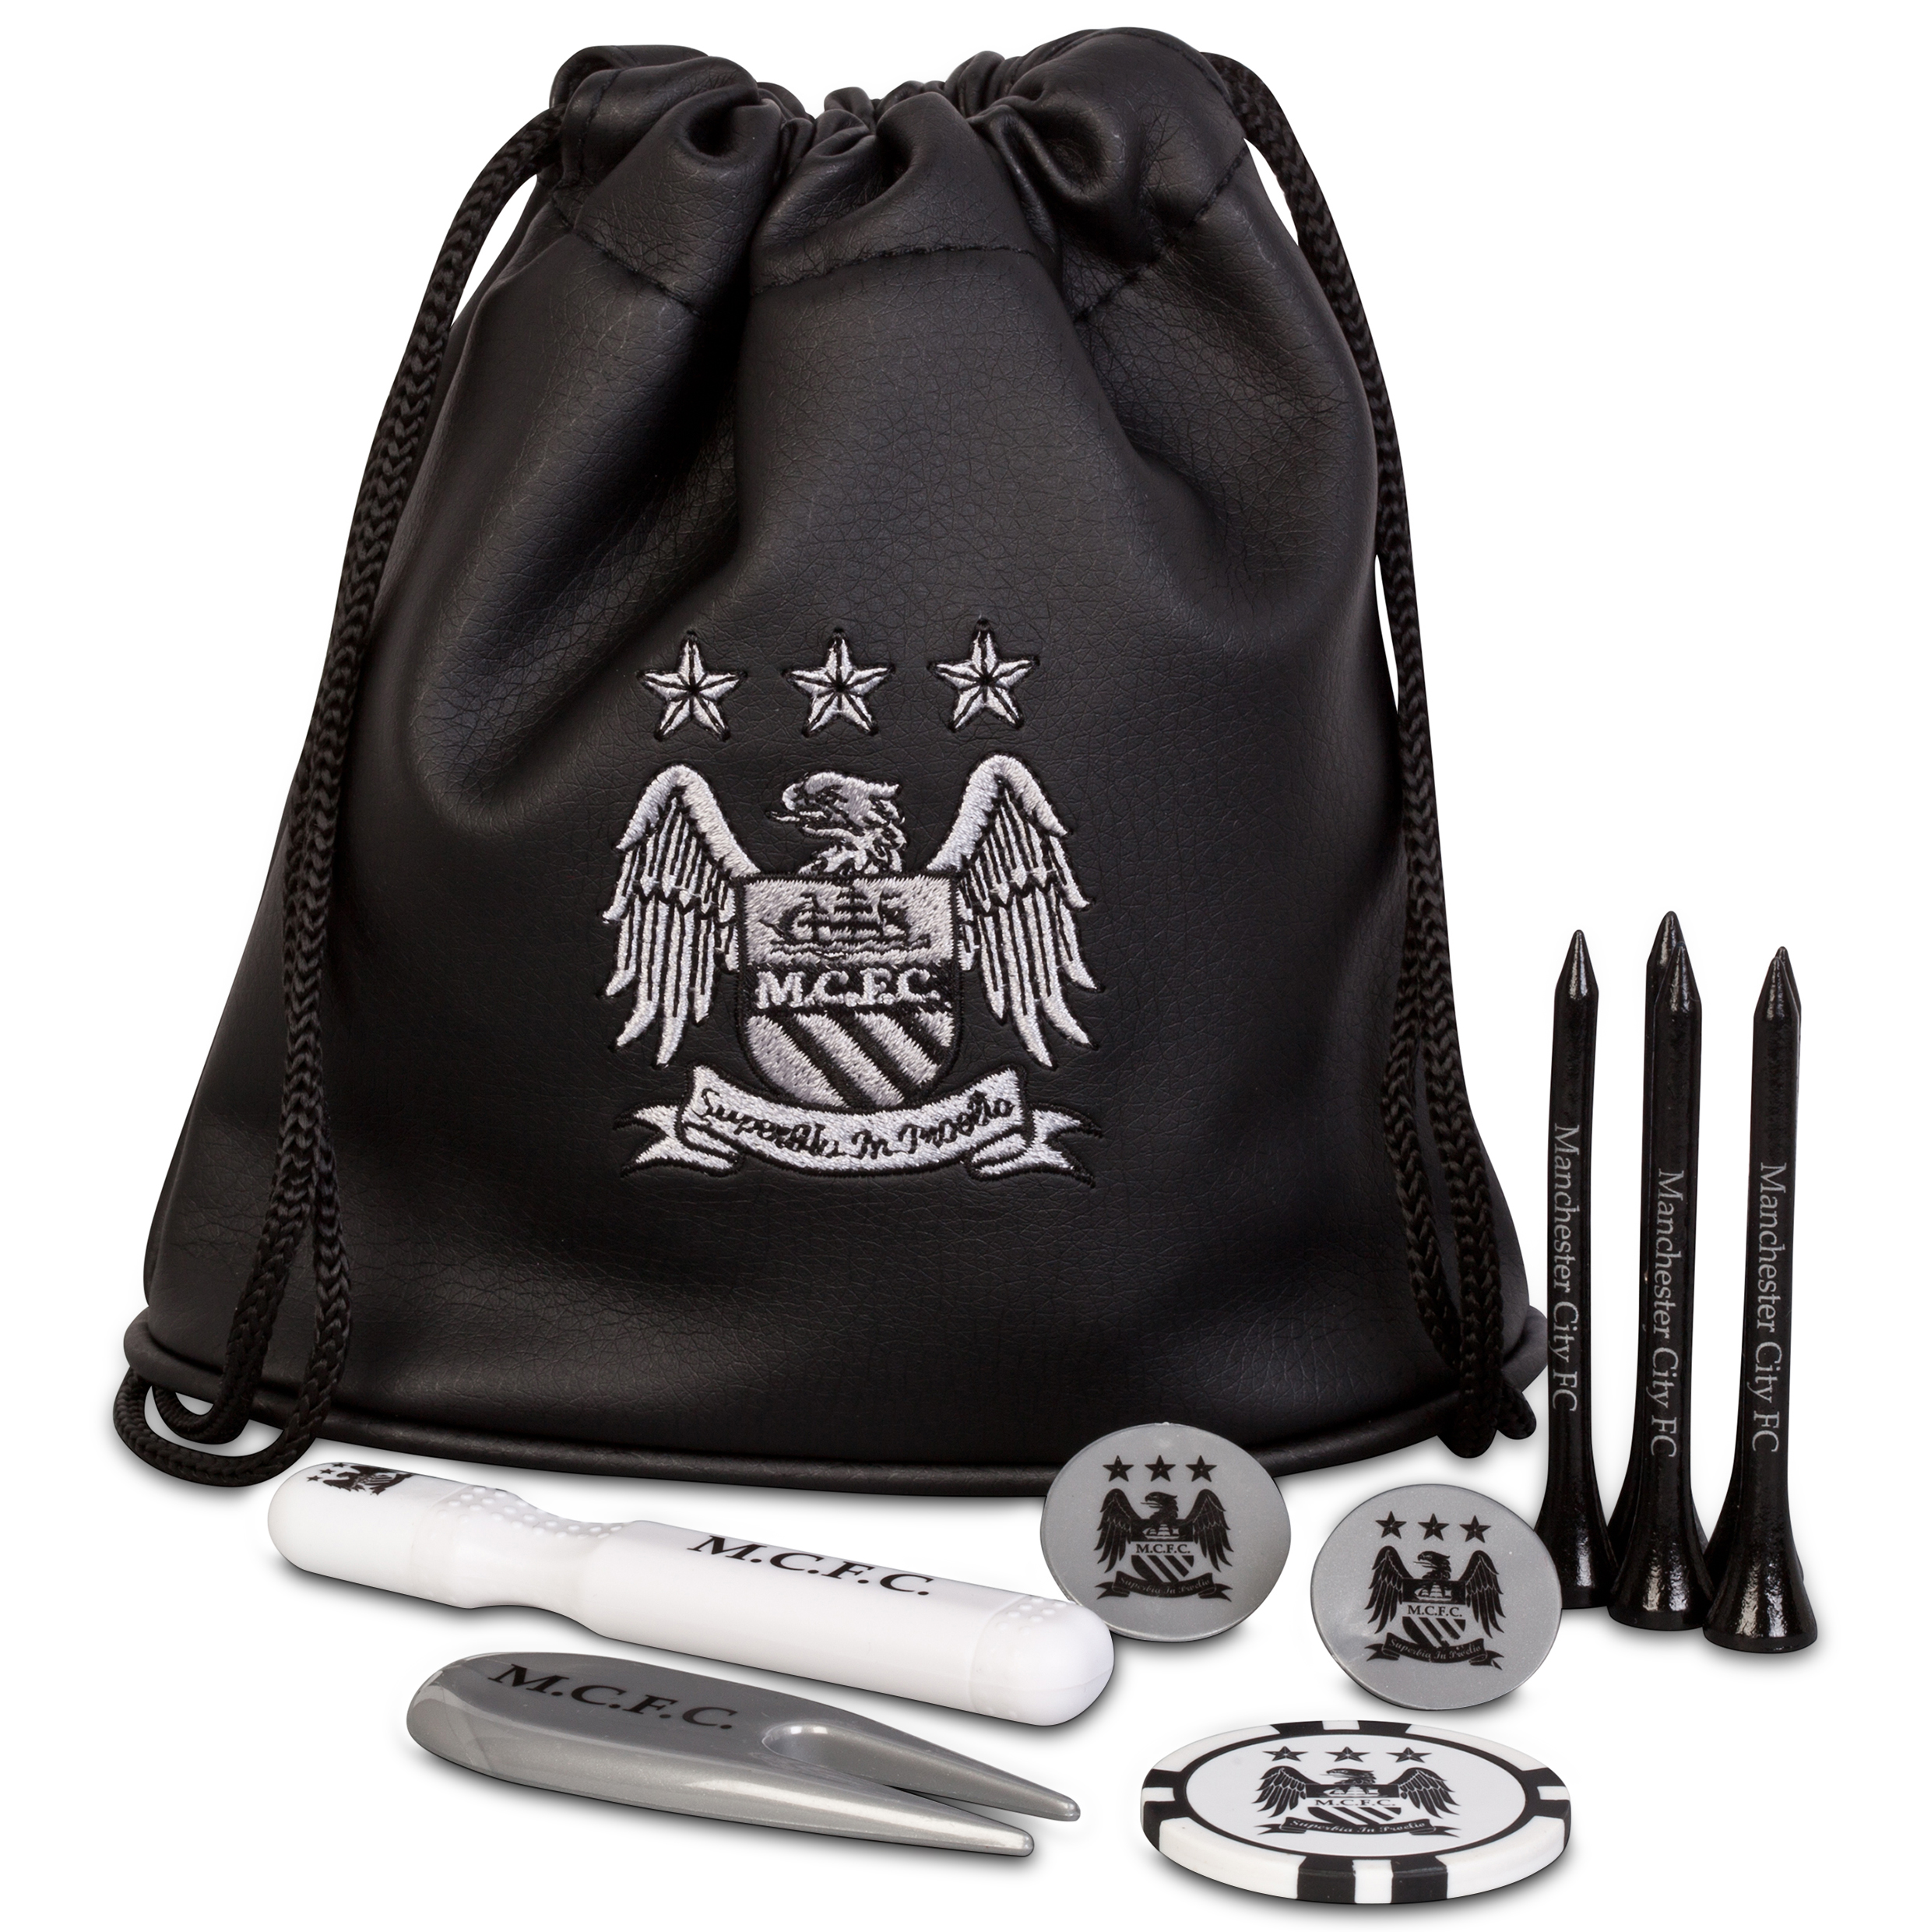 Manchester City Tote Bag Gift Set